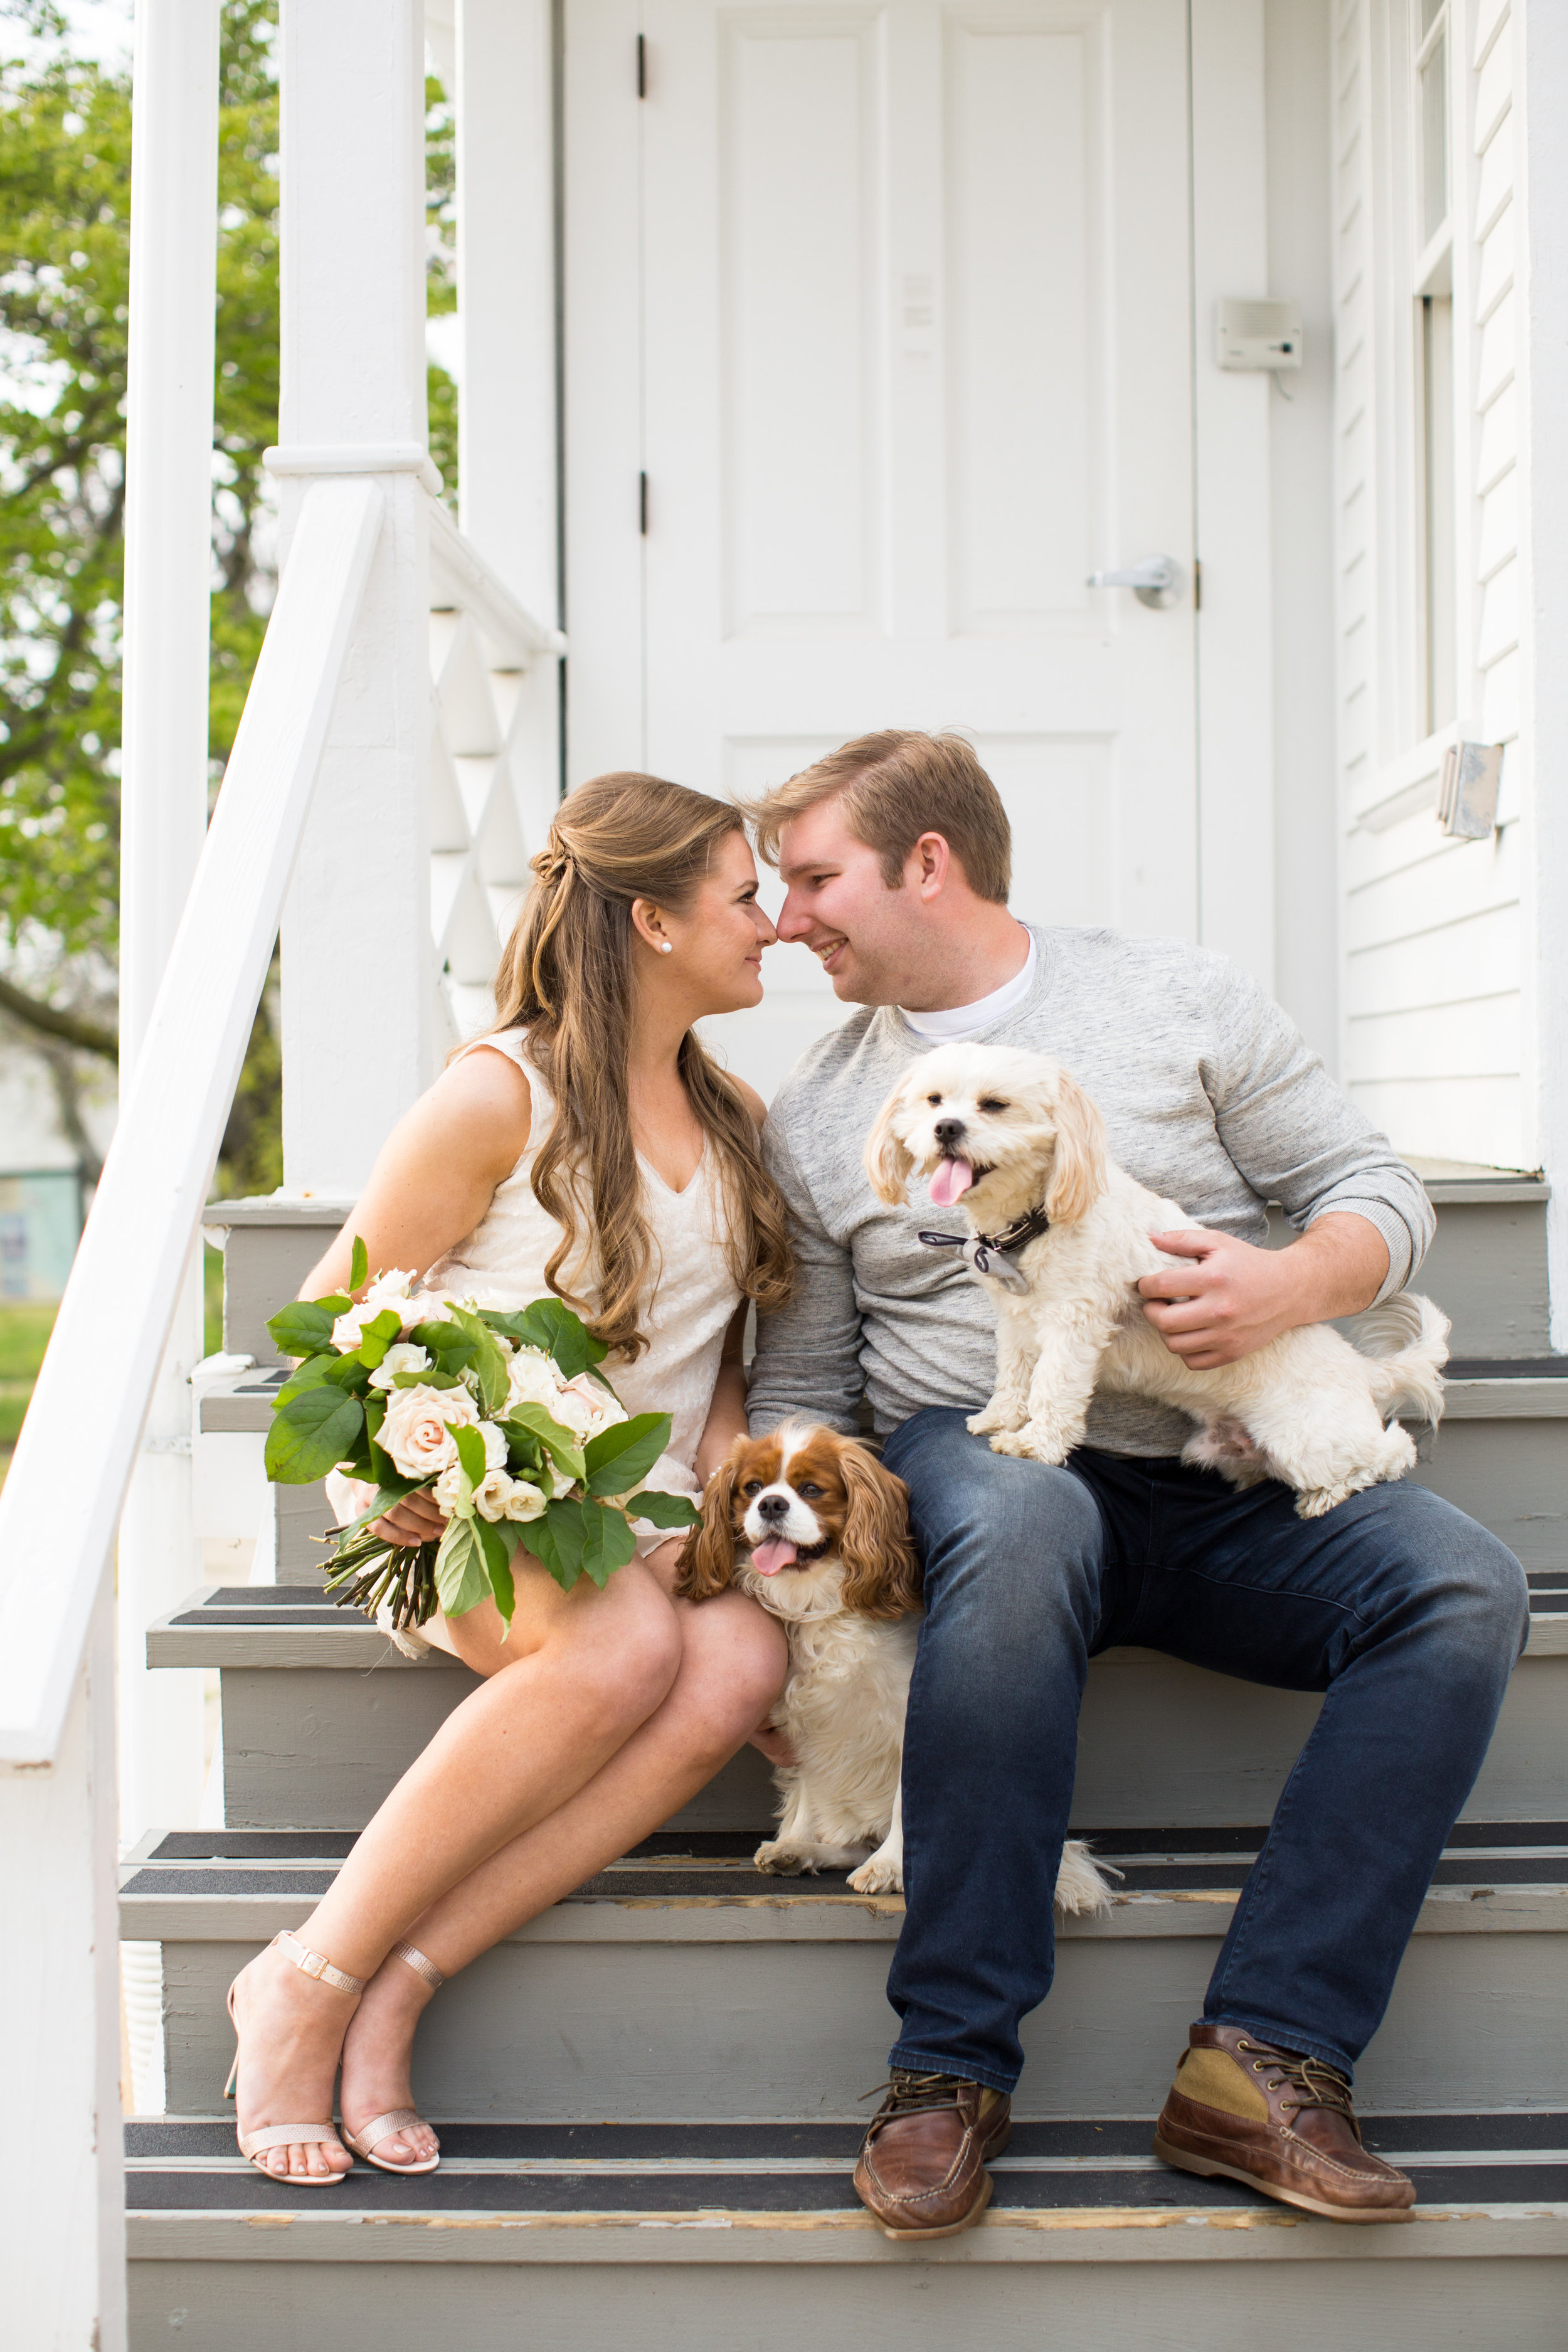 Sandy Hook New Jersey Beach Engagement Session with Magnolia West Events and Jaye Kogut Photography at Light House with Dogs